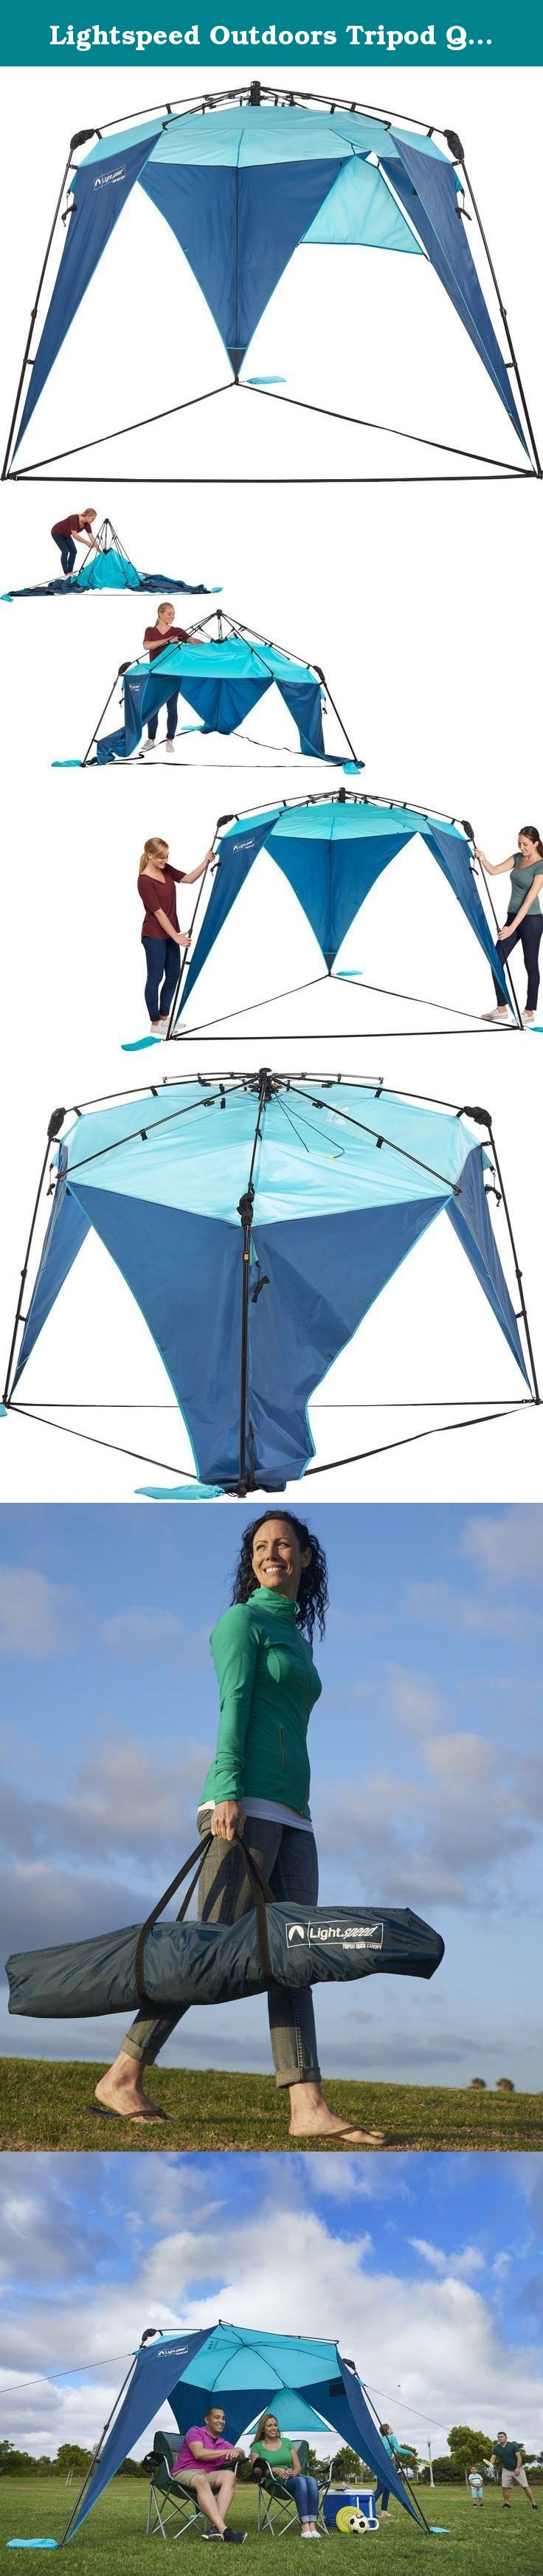 Lightspeed Outdoors Tripod Quick Canopy. Designed in San Diego California the Tripod Quick Canopy  sc 1 st  Pinterest & Lightspeed Outdoors Tripod Quick Canopy. Designed in San Diego ...